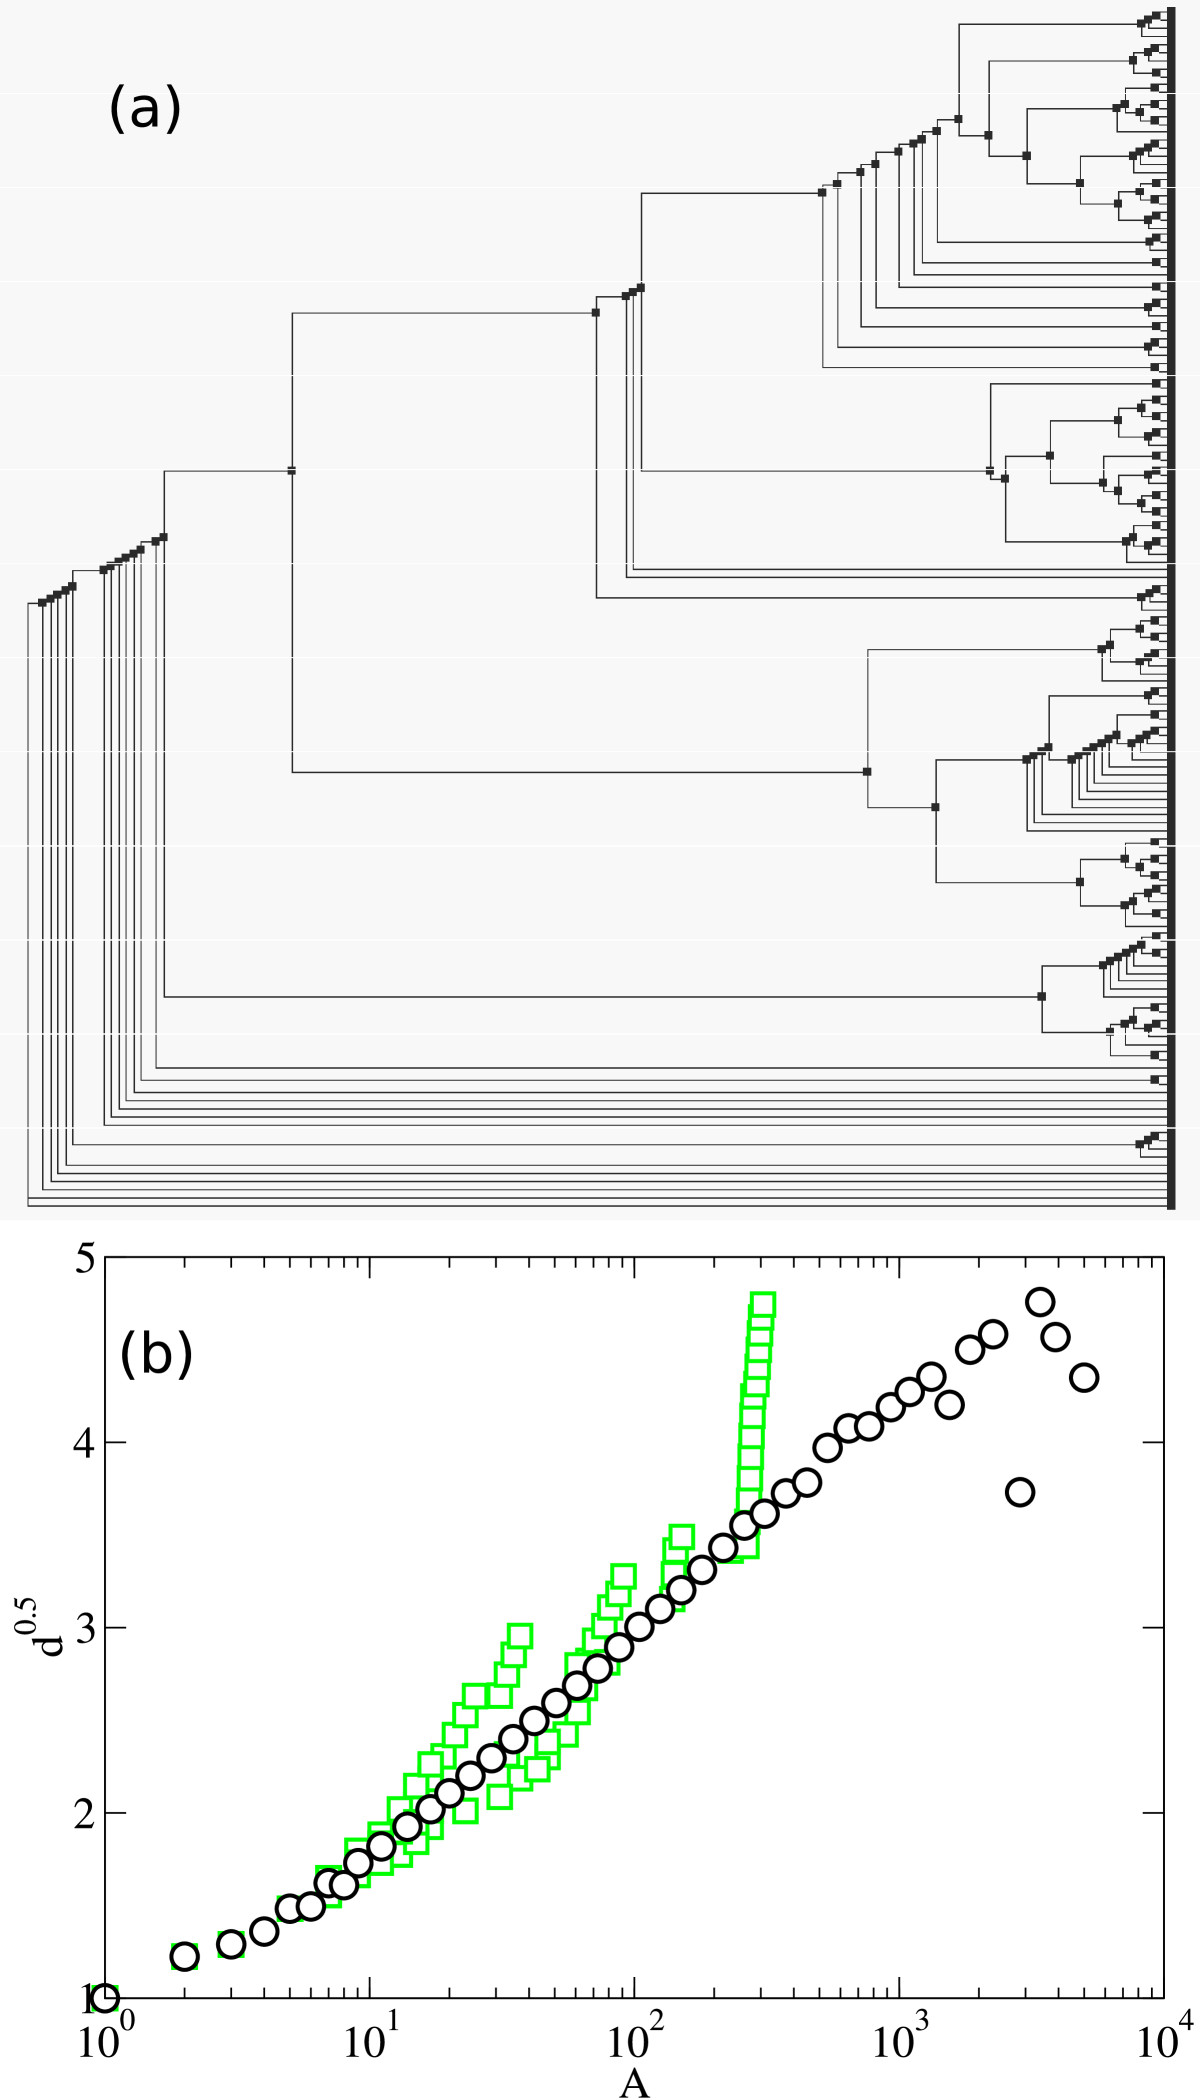 http://static-content.springer.com/image/art%3A10.1186%2F1471-2148-11-155/MediaObjects/12862_2011_1765_Fig5_HTML.jpg